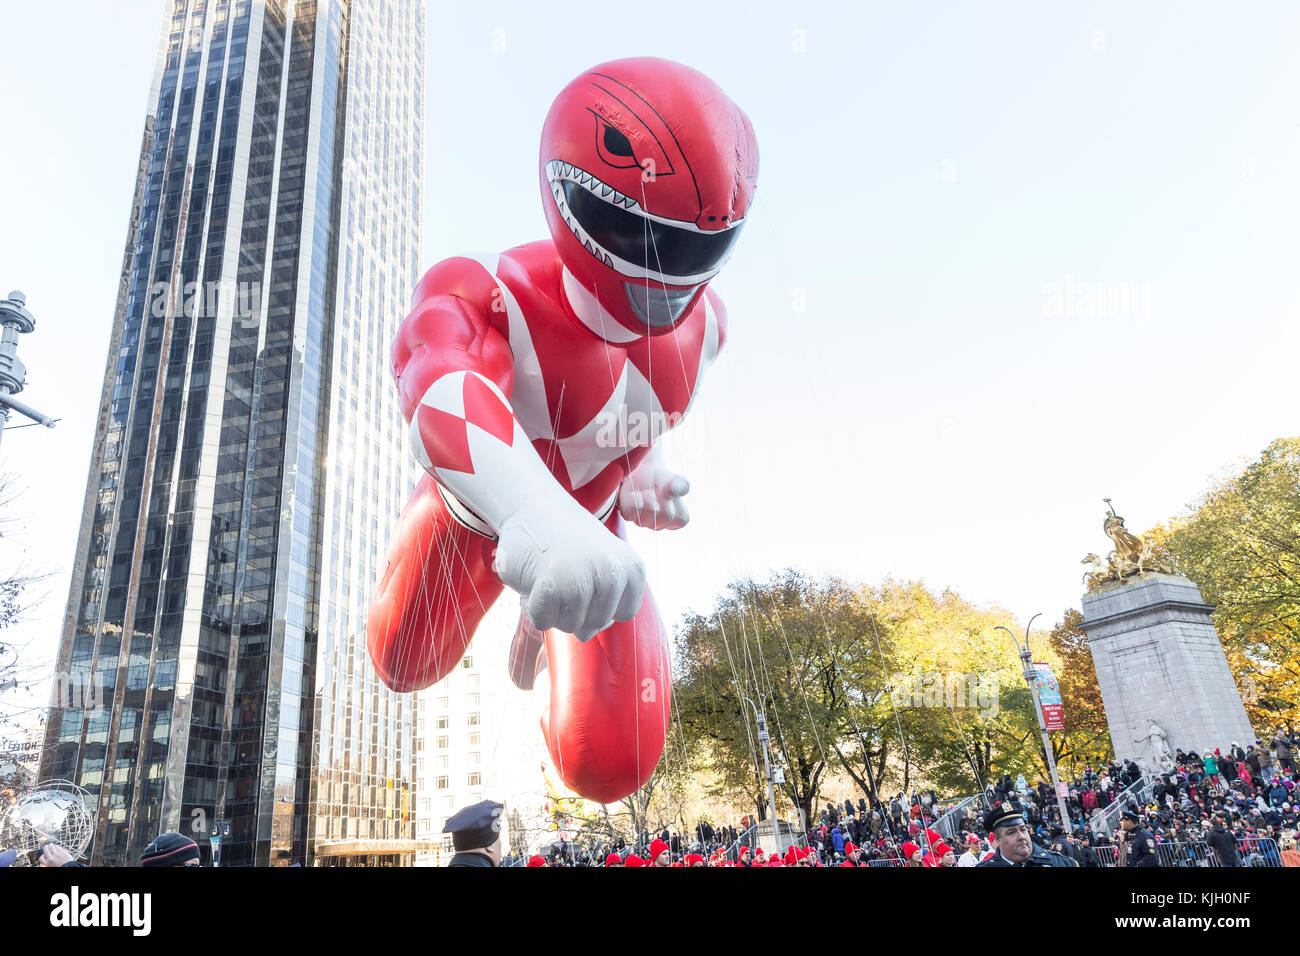 New York, United States. 23rd Nov, 2017.Red Mighty Morphin Power Ranger balloon floats during 91st Annual Macy's - Stock Image